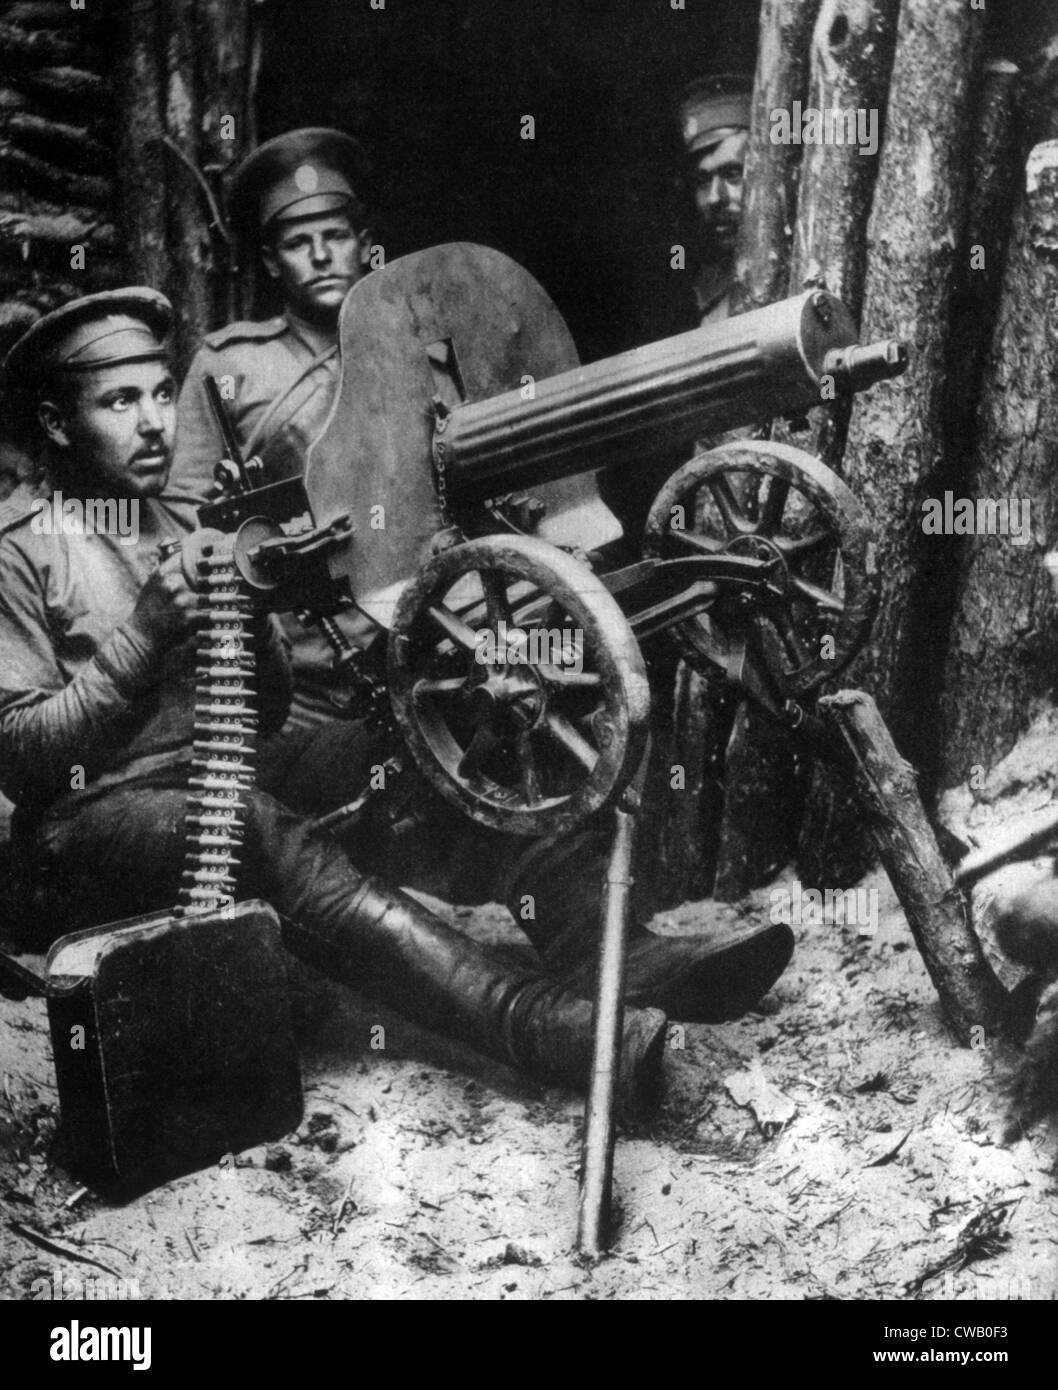 World War I, Russian machine gunners near Brest-Litovsk, 1915 - Stock Image